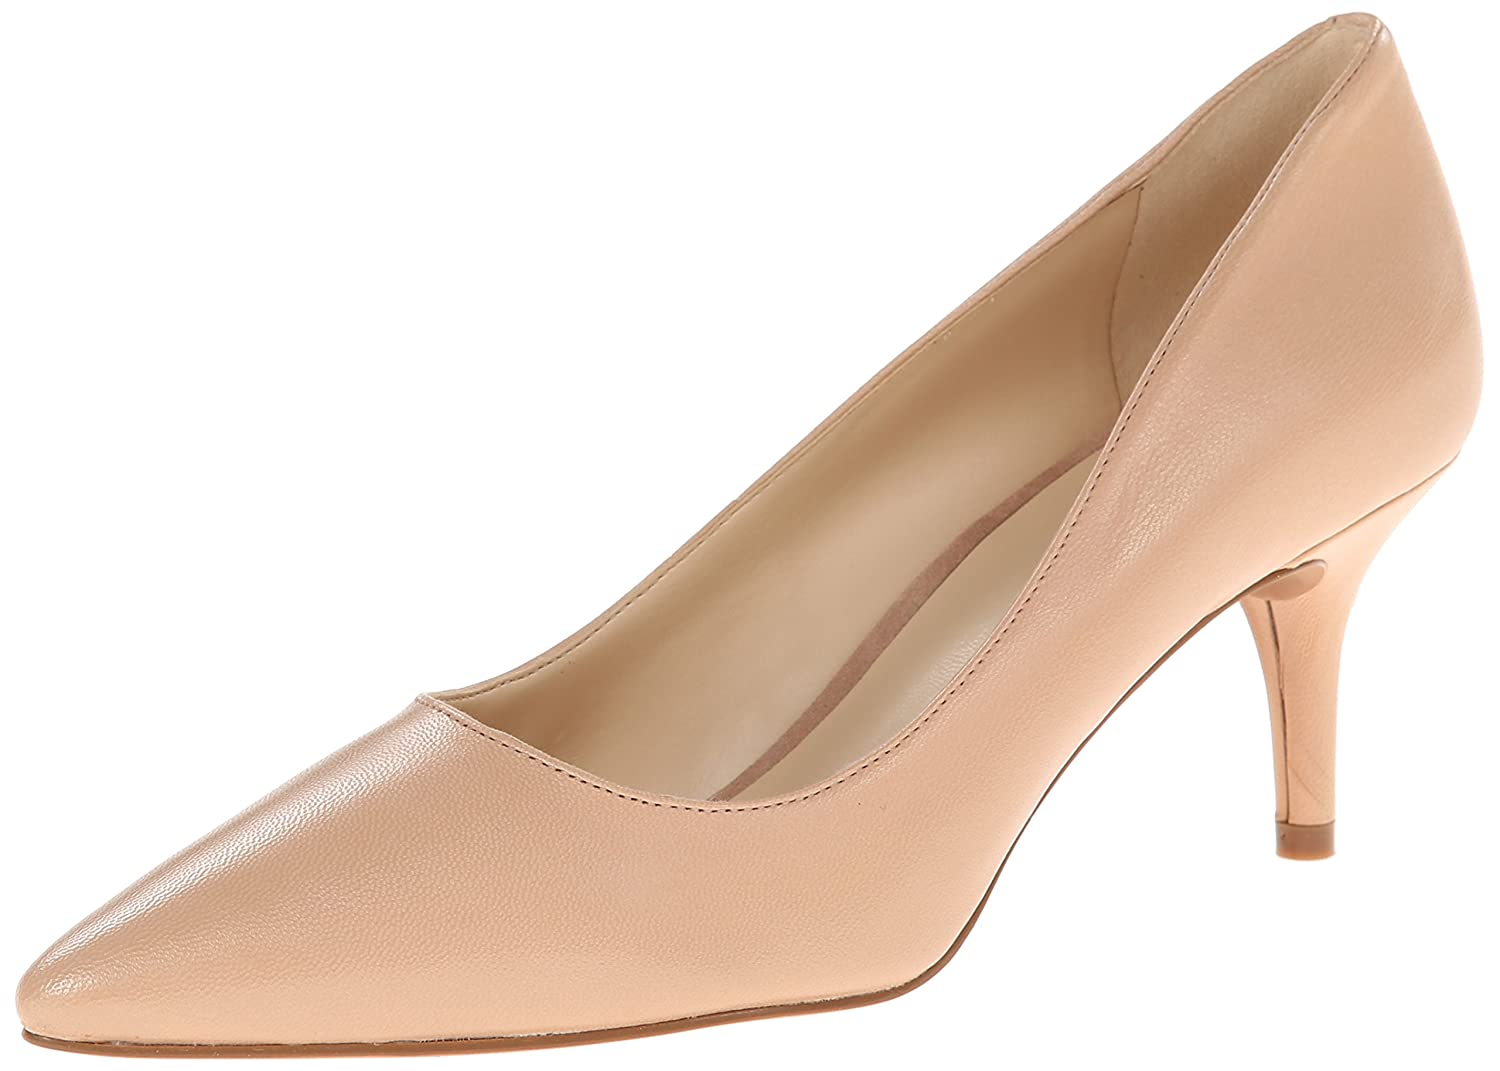 Nine West Women's Margot Dress Pump B00ND0JQC2 8.5 M US|Naturale Leather